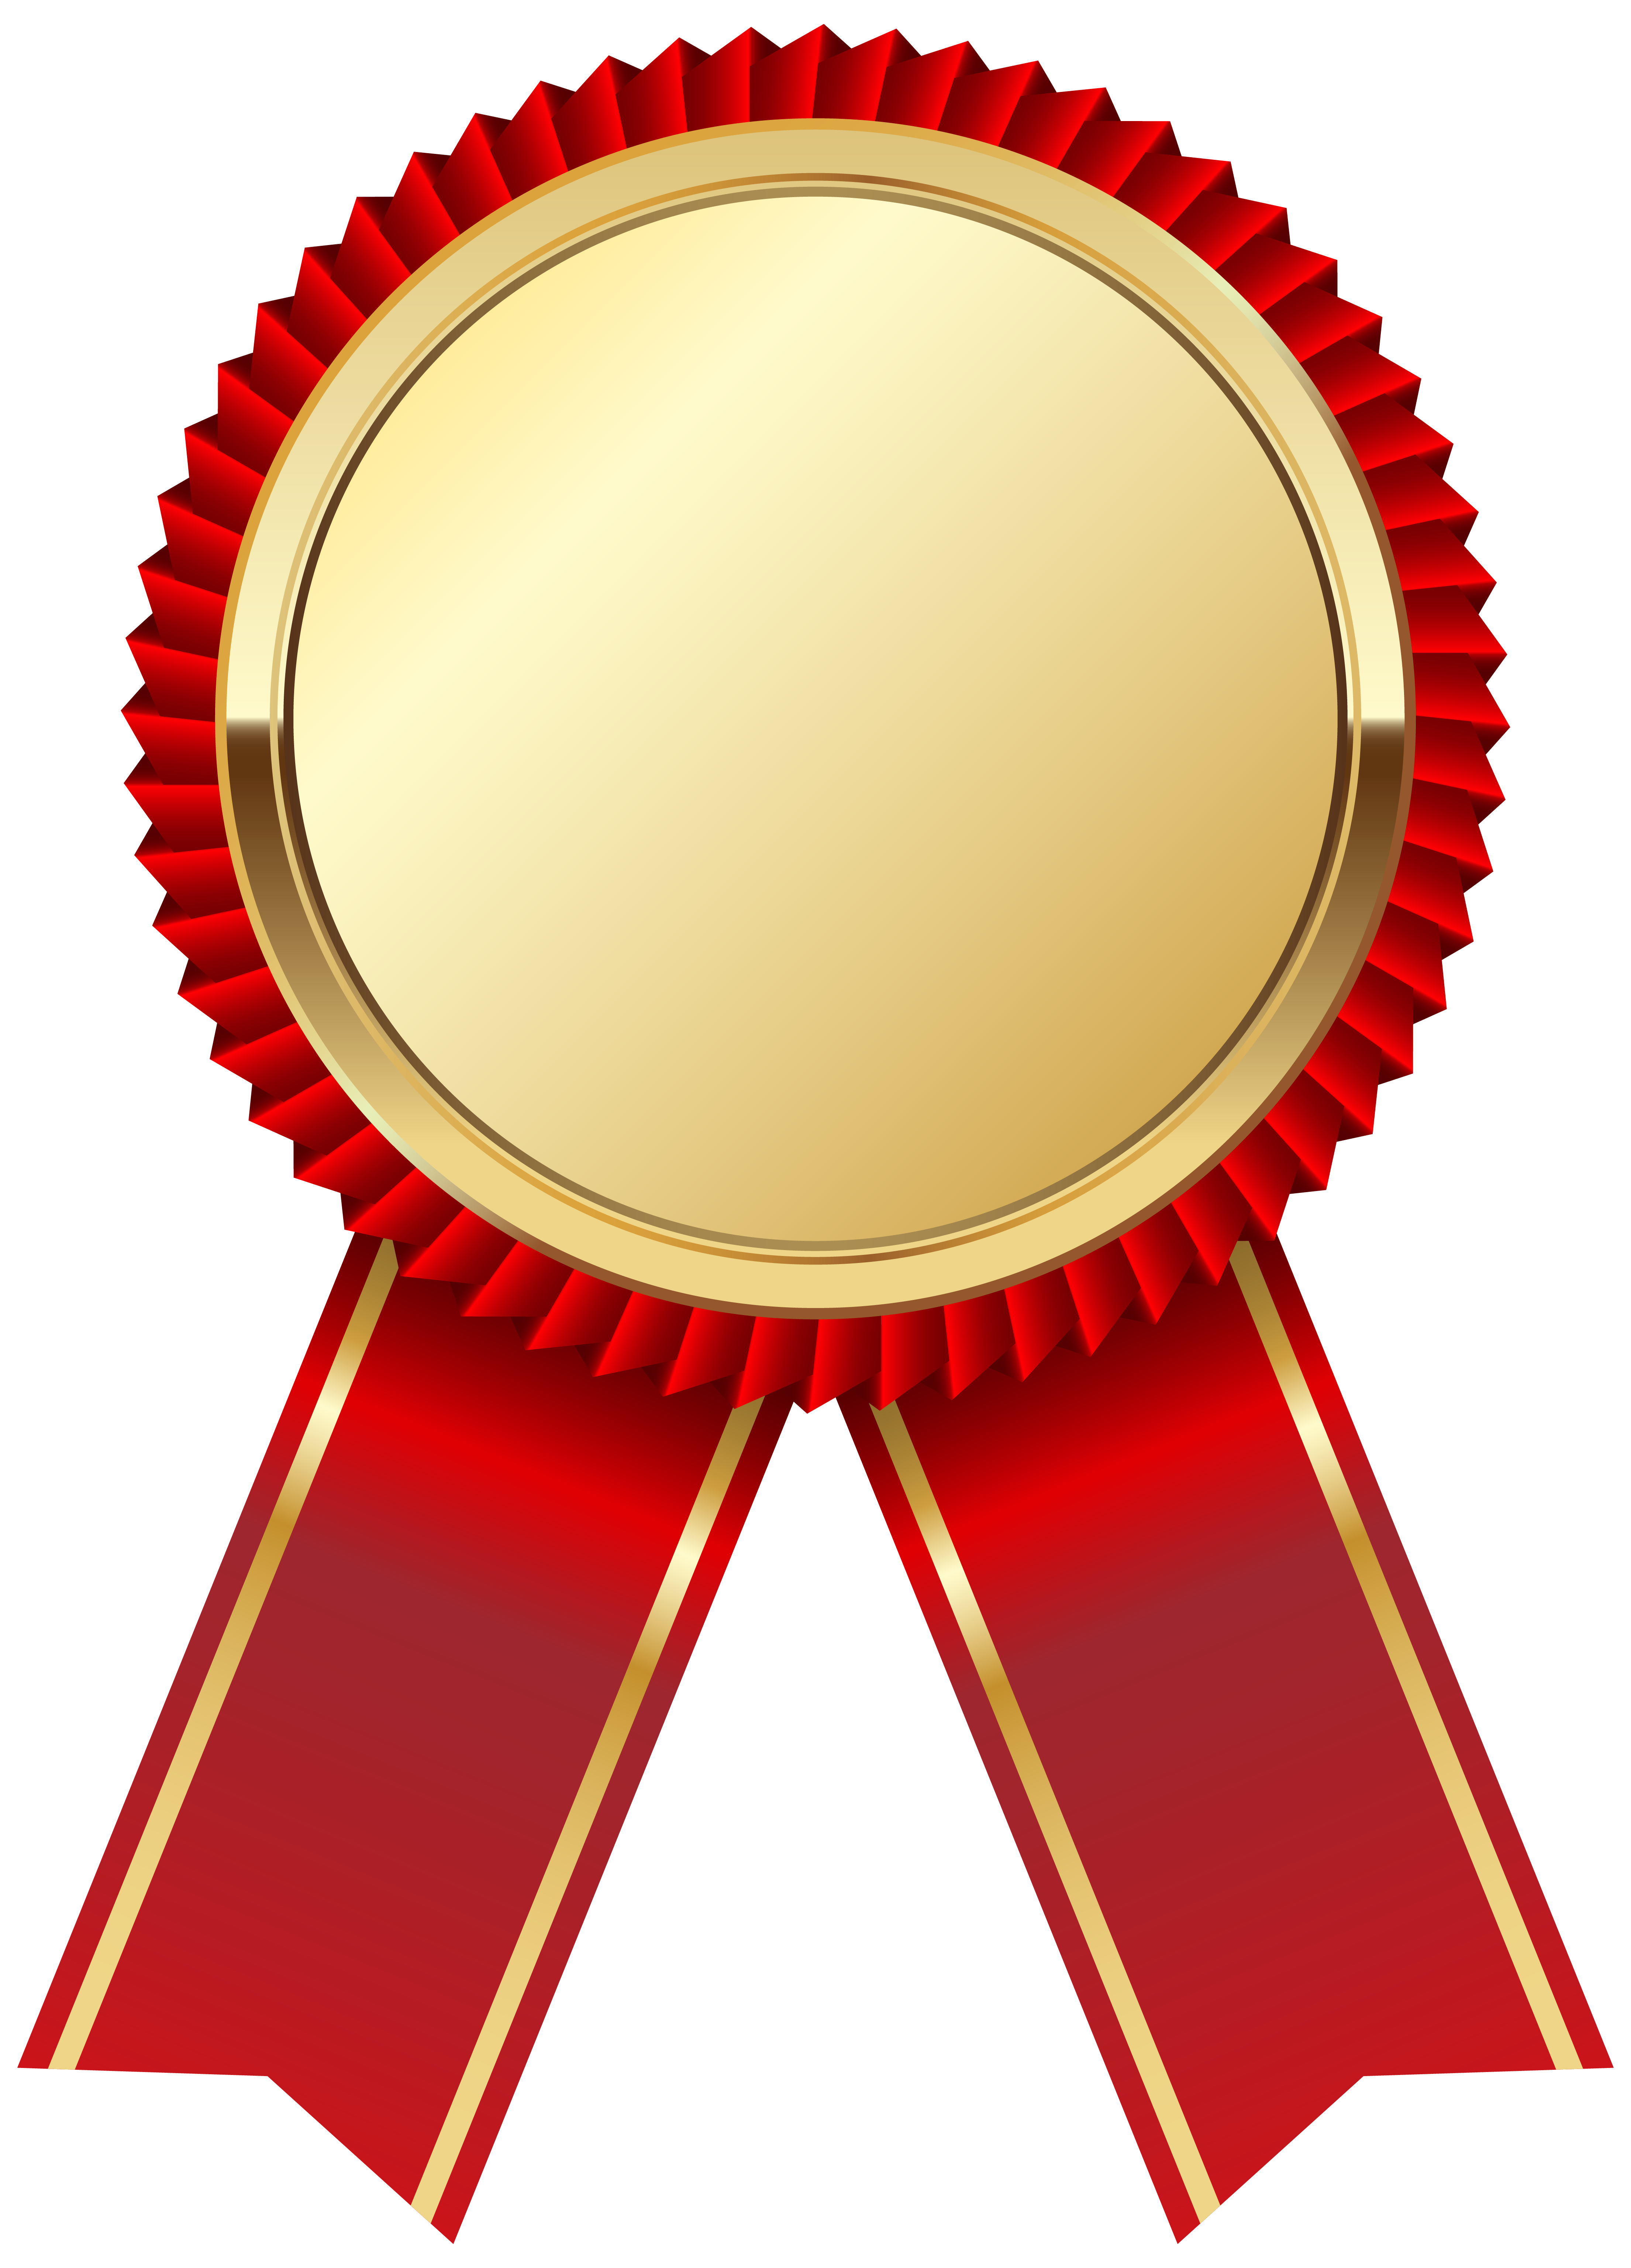 Gold Medal with Red Ribbon PNG Clipart P-Gold Medal with Red Ribbon PNG Clipart Picture-4